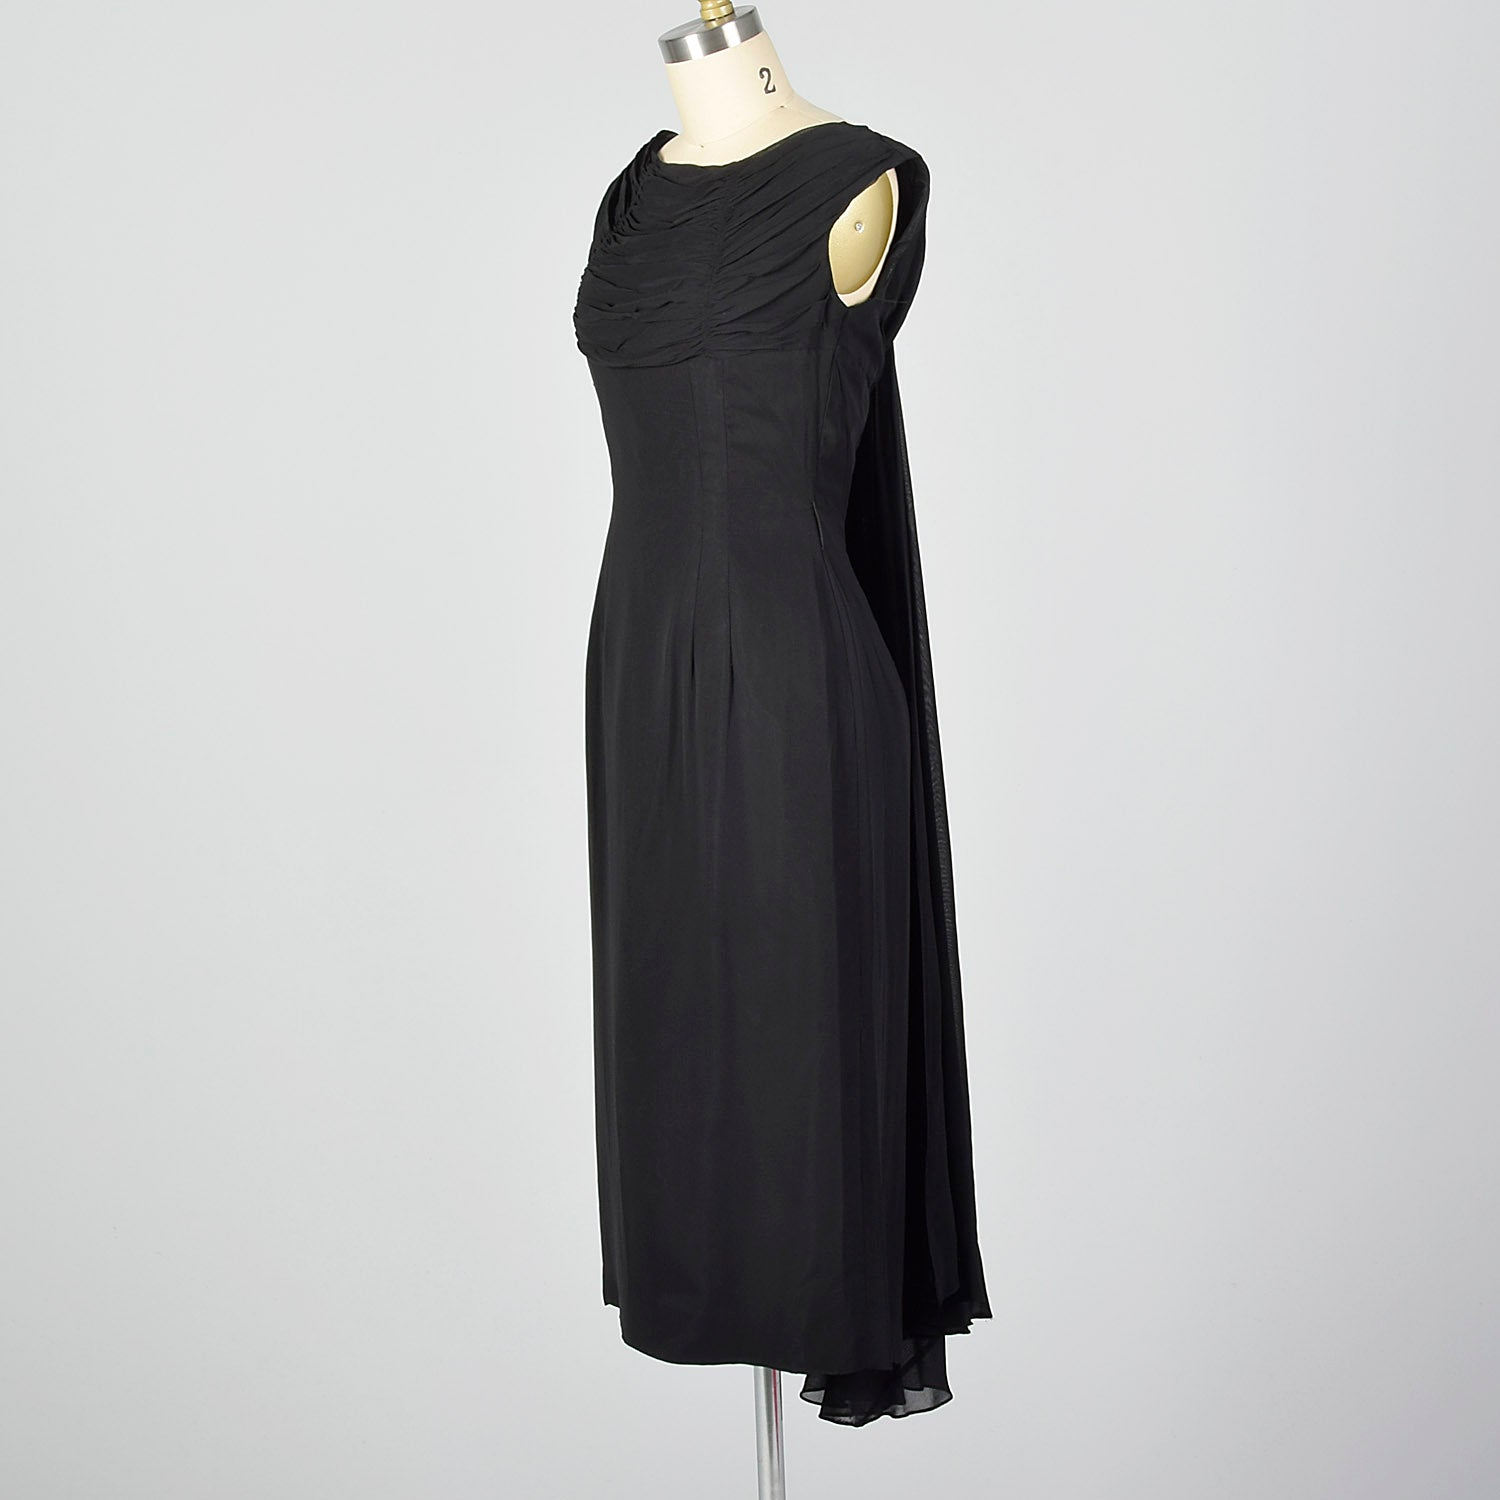 XS 1950s Black Cocktail Dress with Train